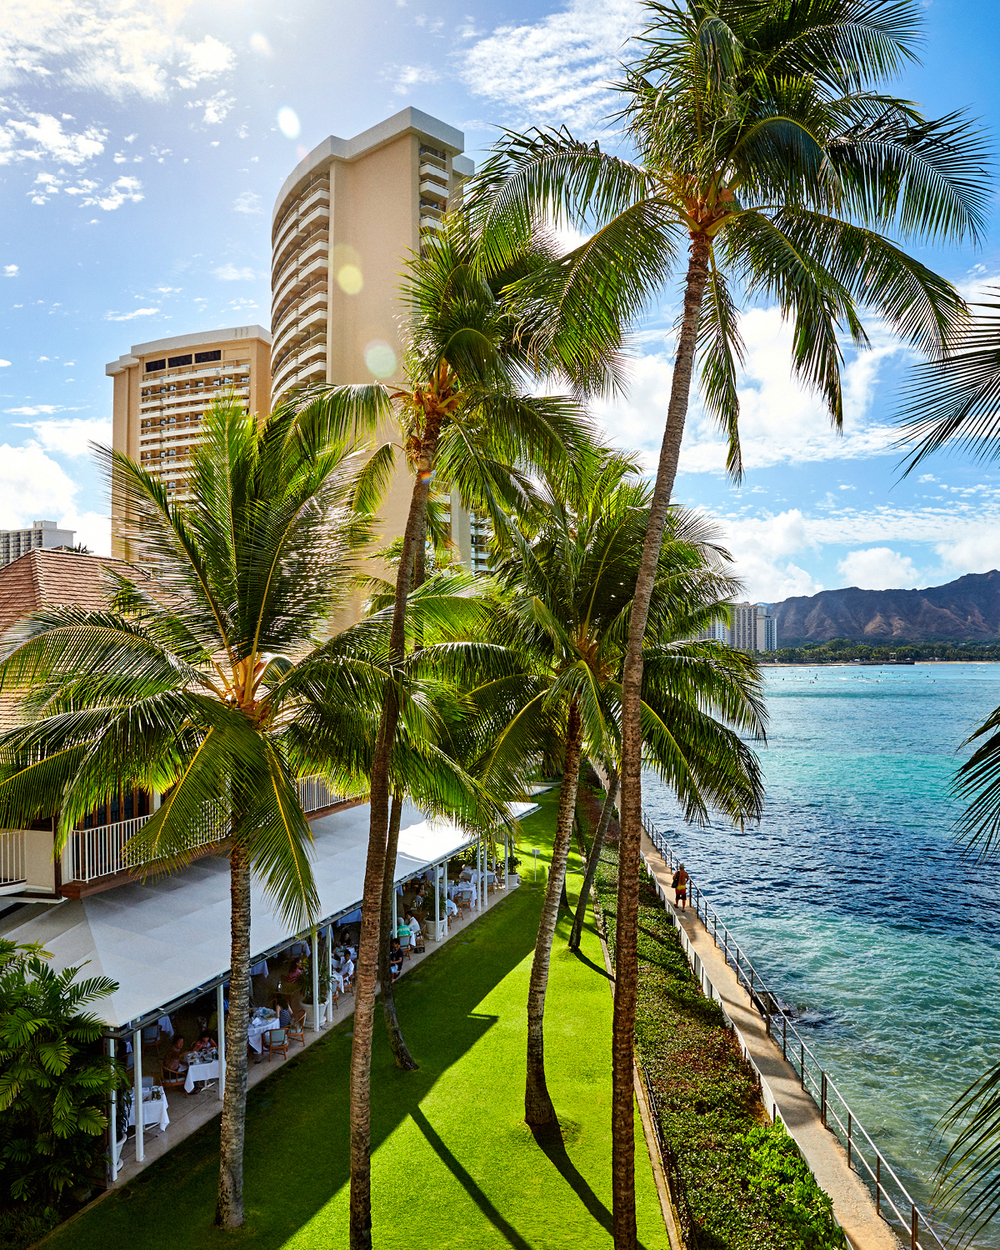 VIEW FROM ROYAL SUITE BALCONY AT HALEKULANI